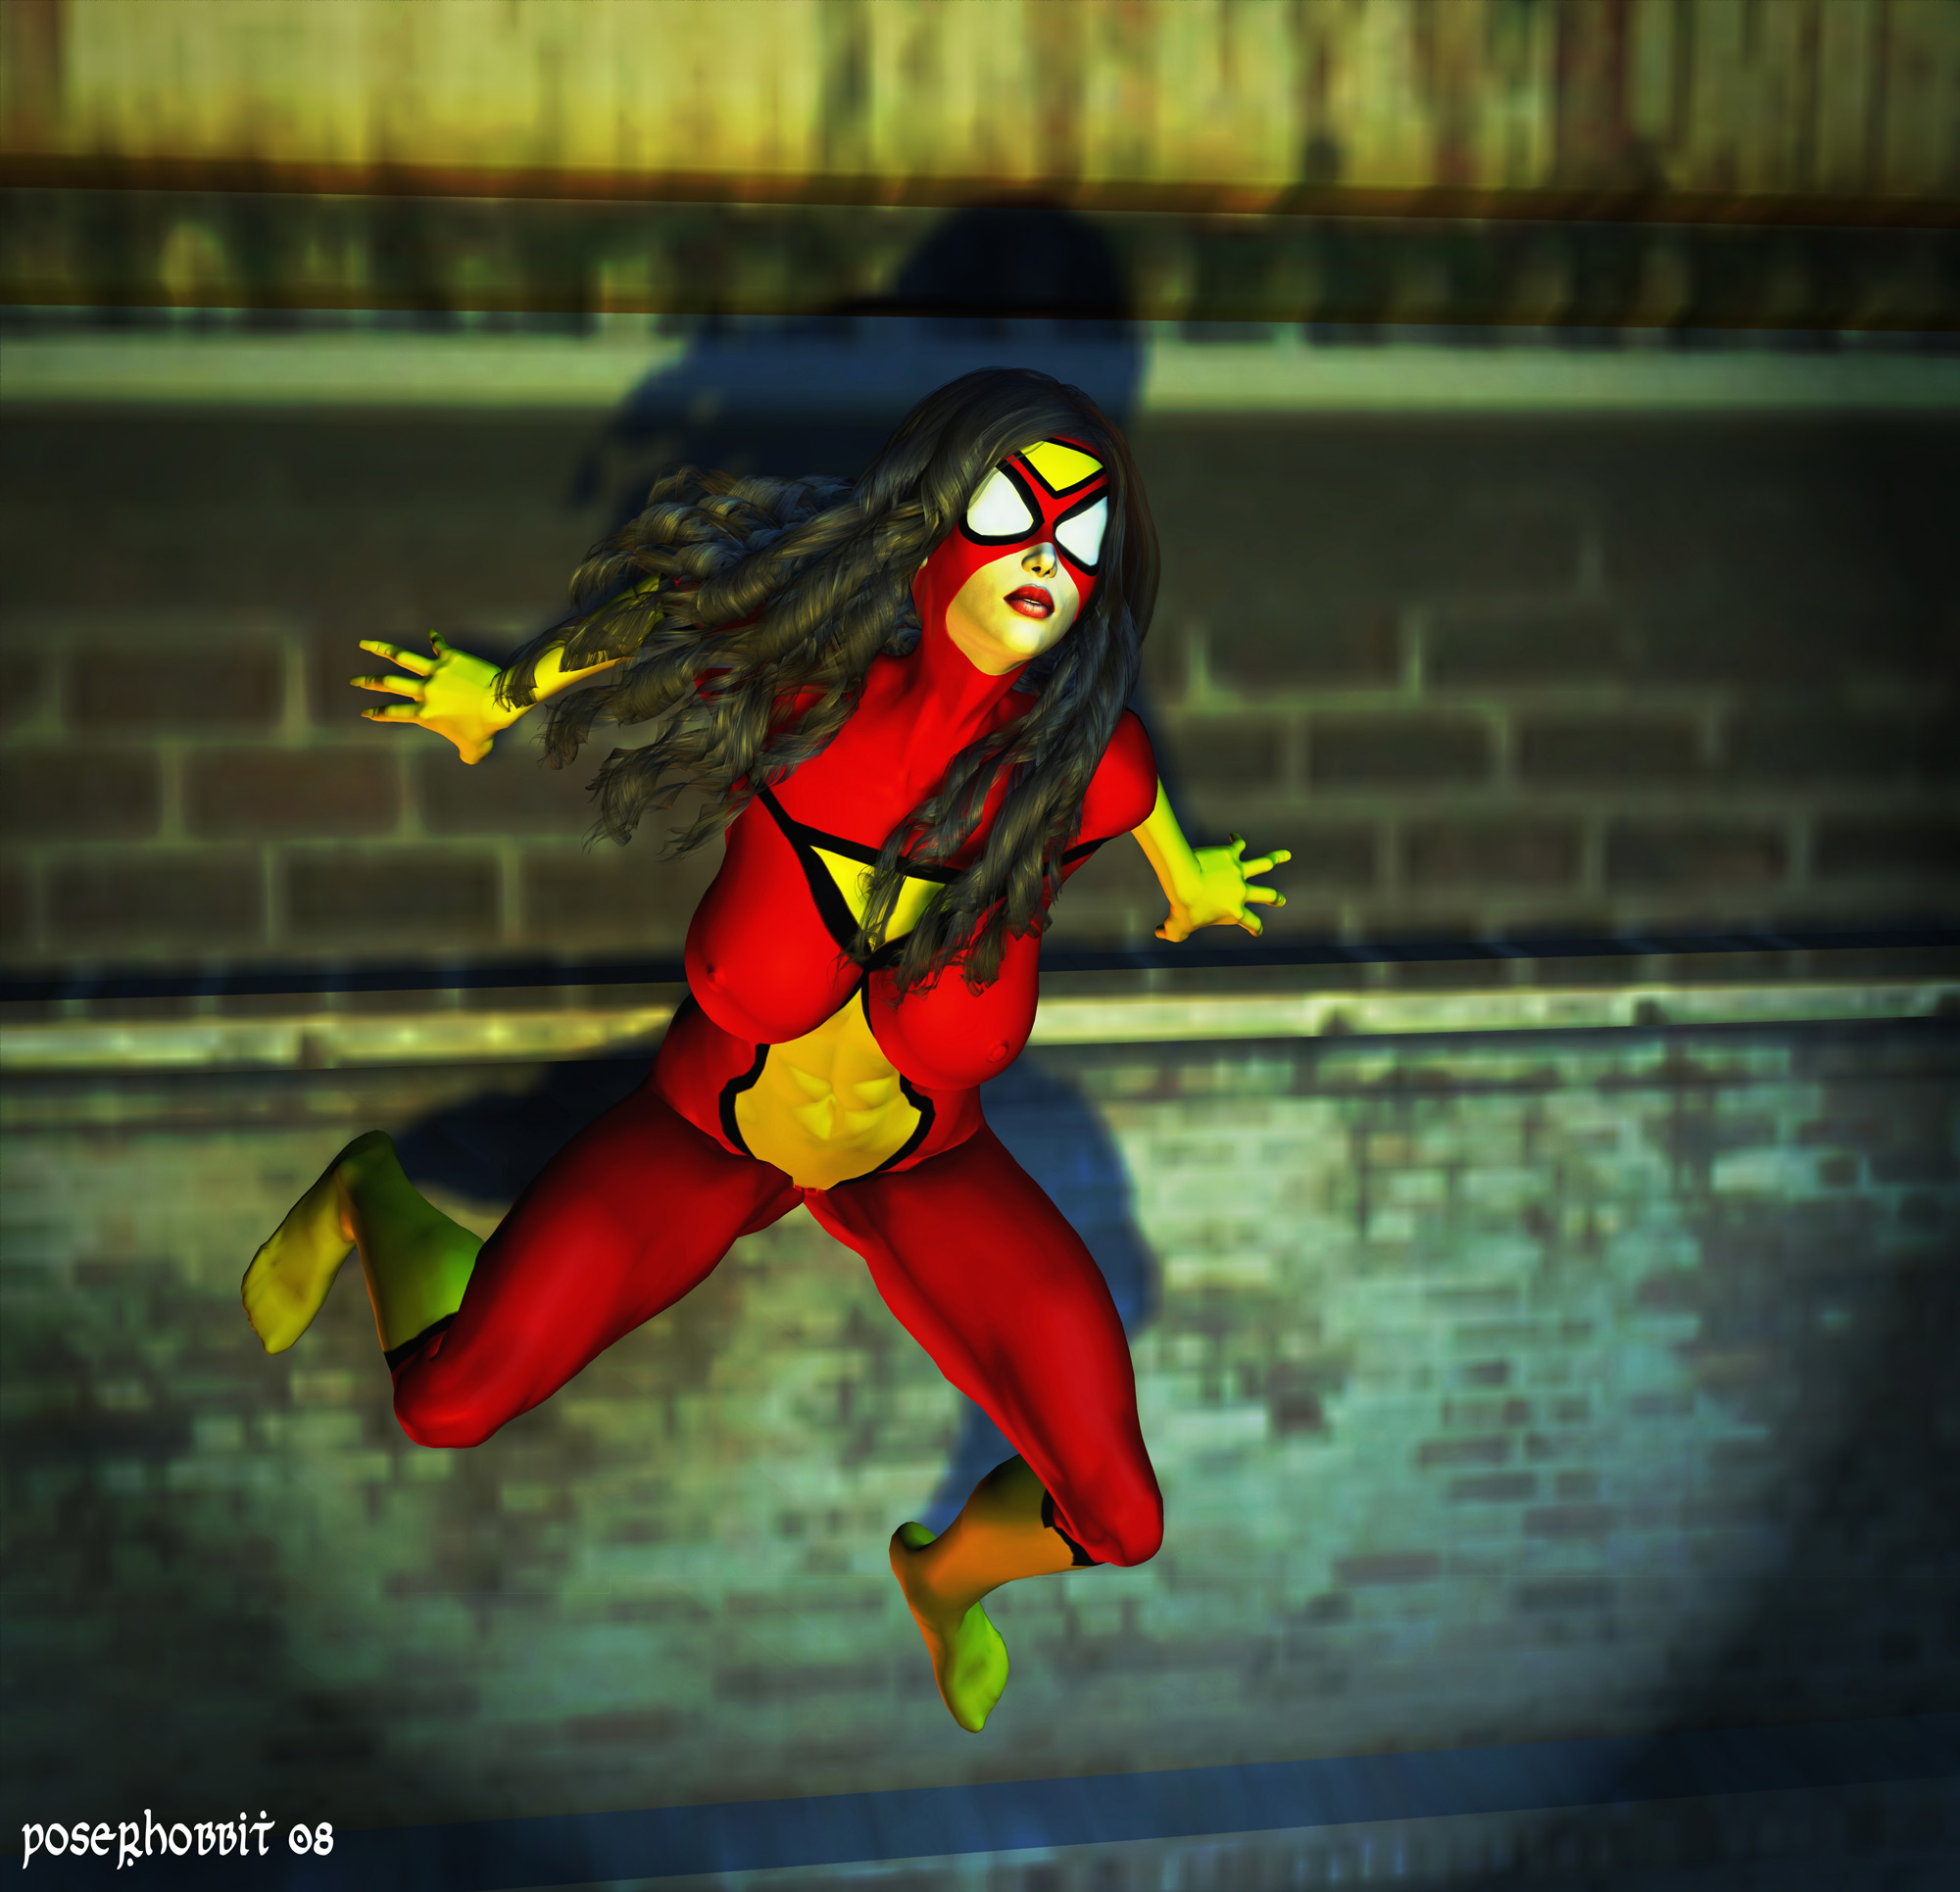 The Spectacular Spider Woman